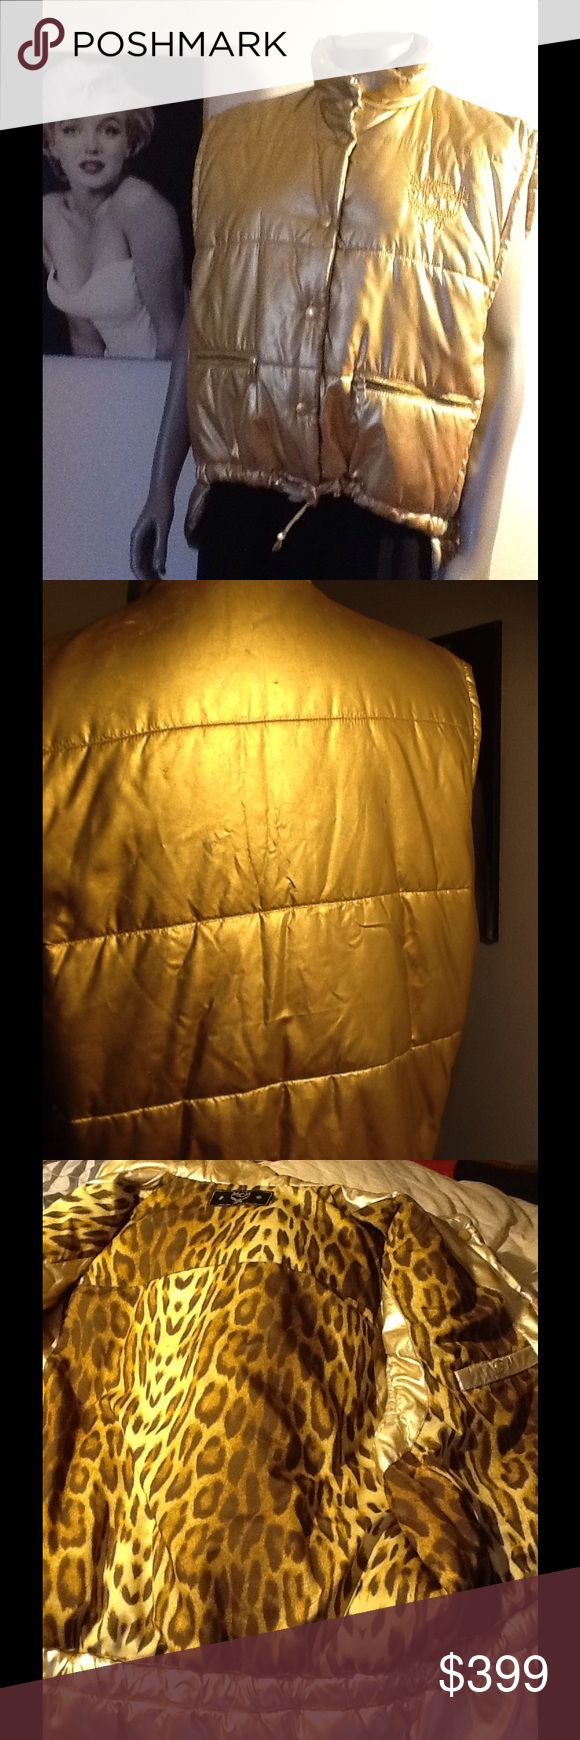 Rare metallic gold MCM vest puffer This is an authentic stunning MCM vest puffer jacket. It's been loved and has signs of wear on the outside of jacket. Some of the gold metallic has rubbed off. This can be resprayed with material paint. Or still worn like is now. This is a rare MCM vest jacket. Size 42 MCM Jackets & Coats Puffers